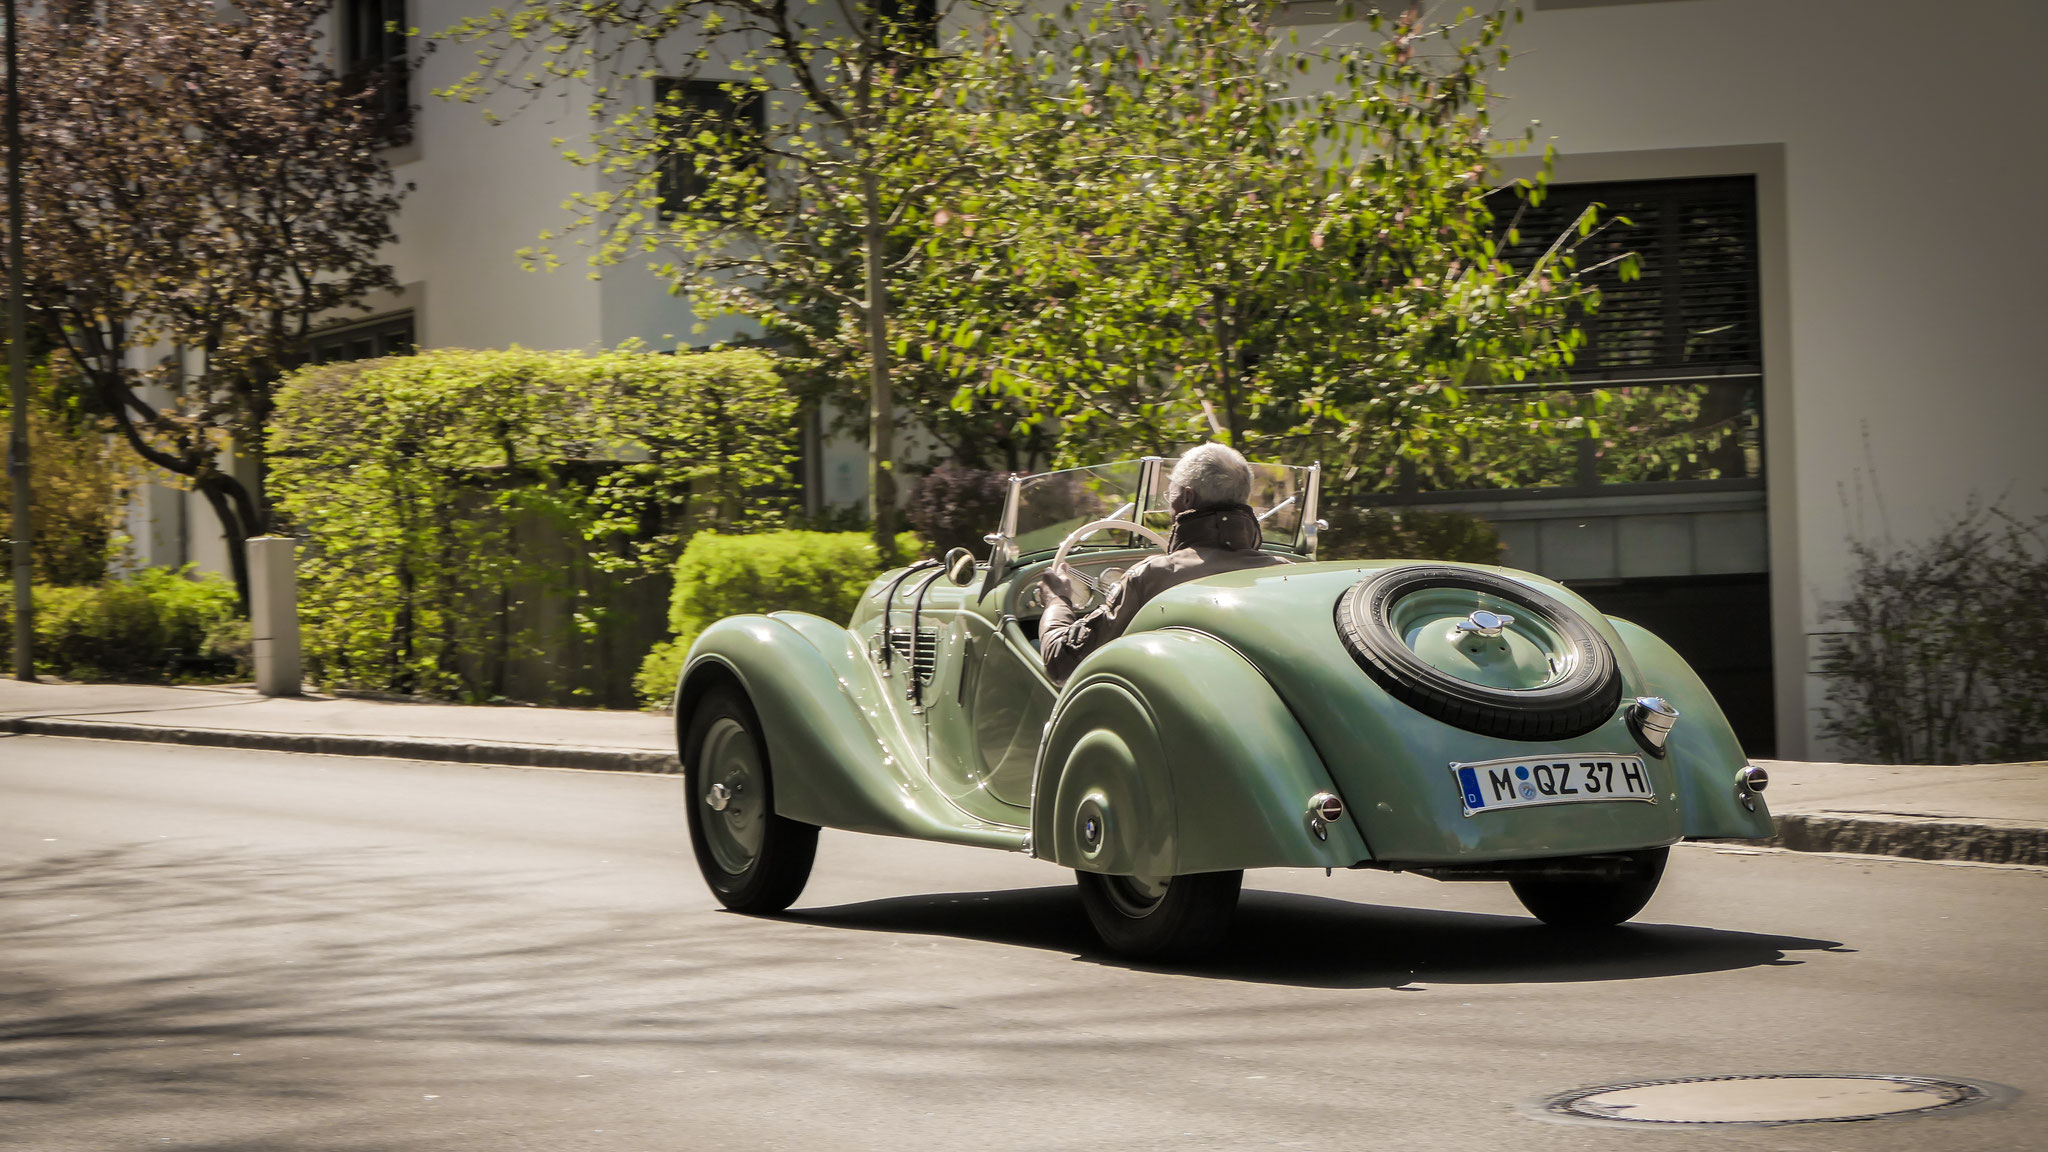 BMW 328 Roadster - M-QZ-37H